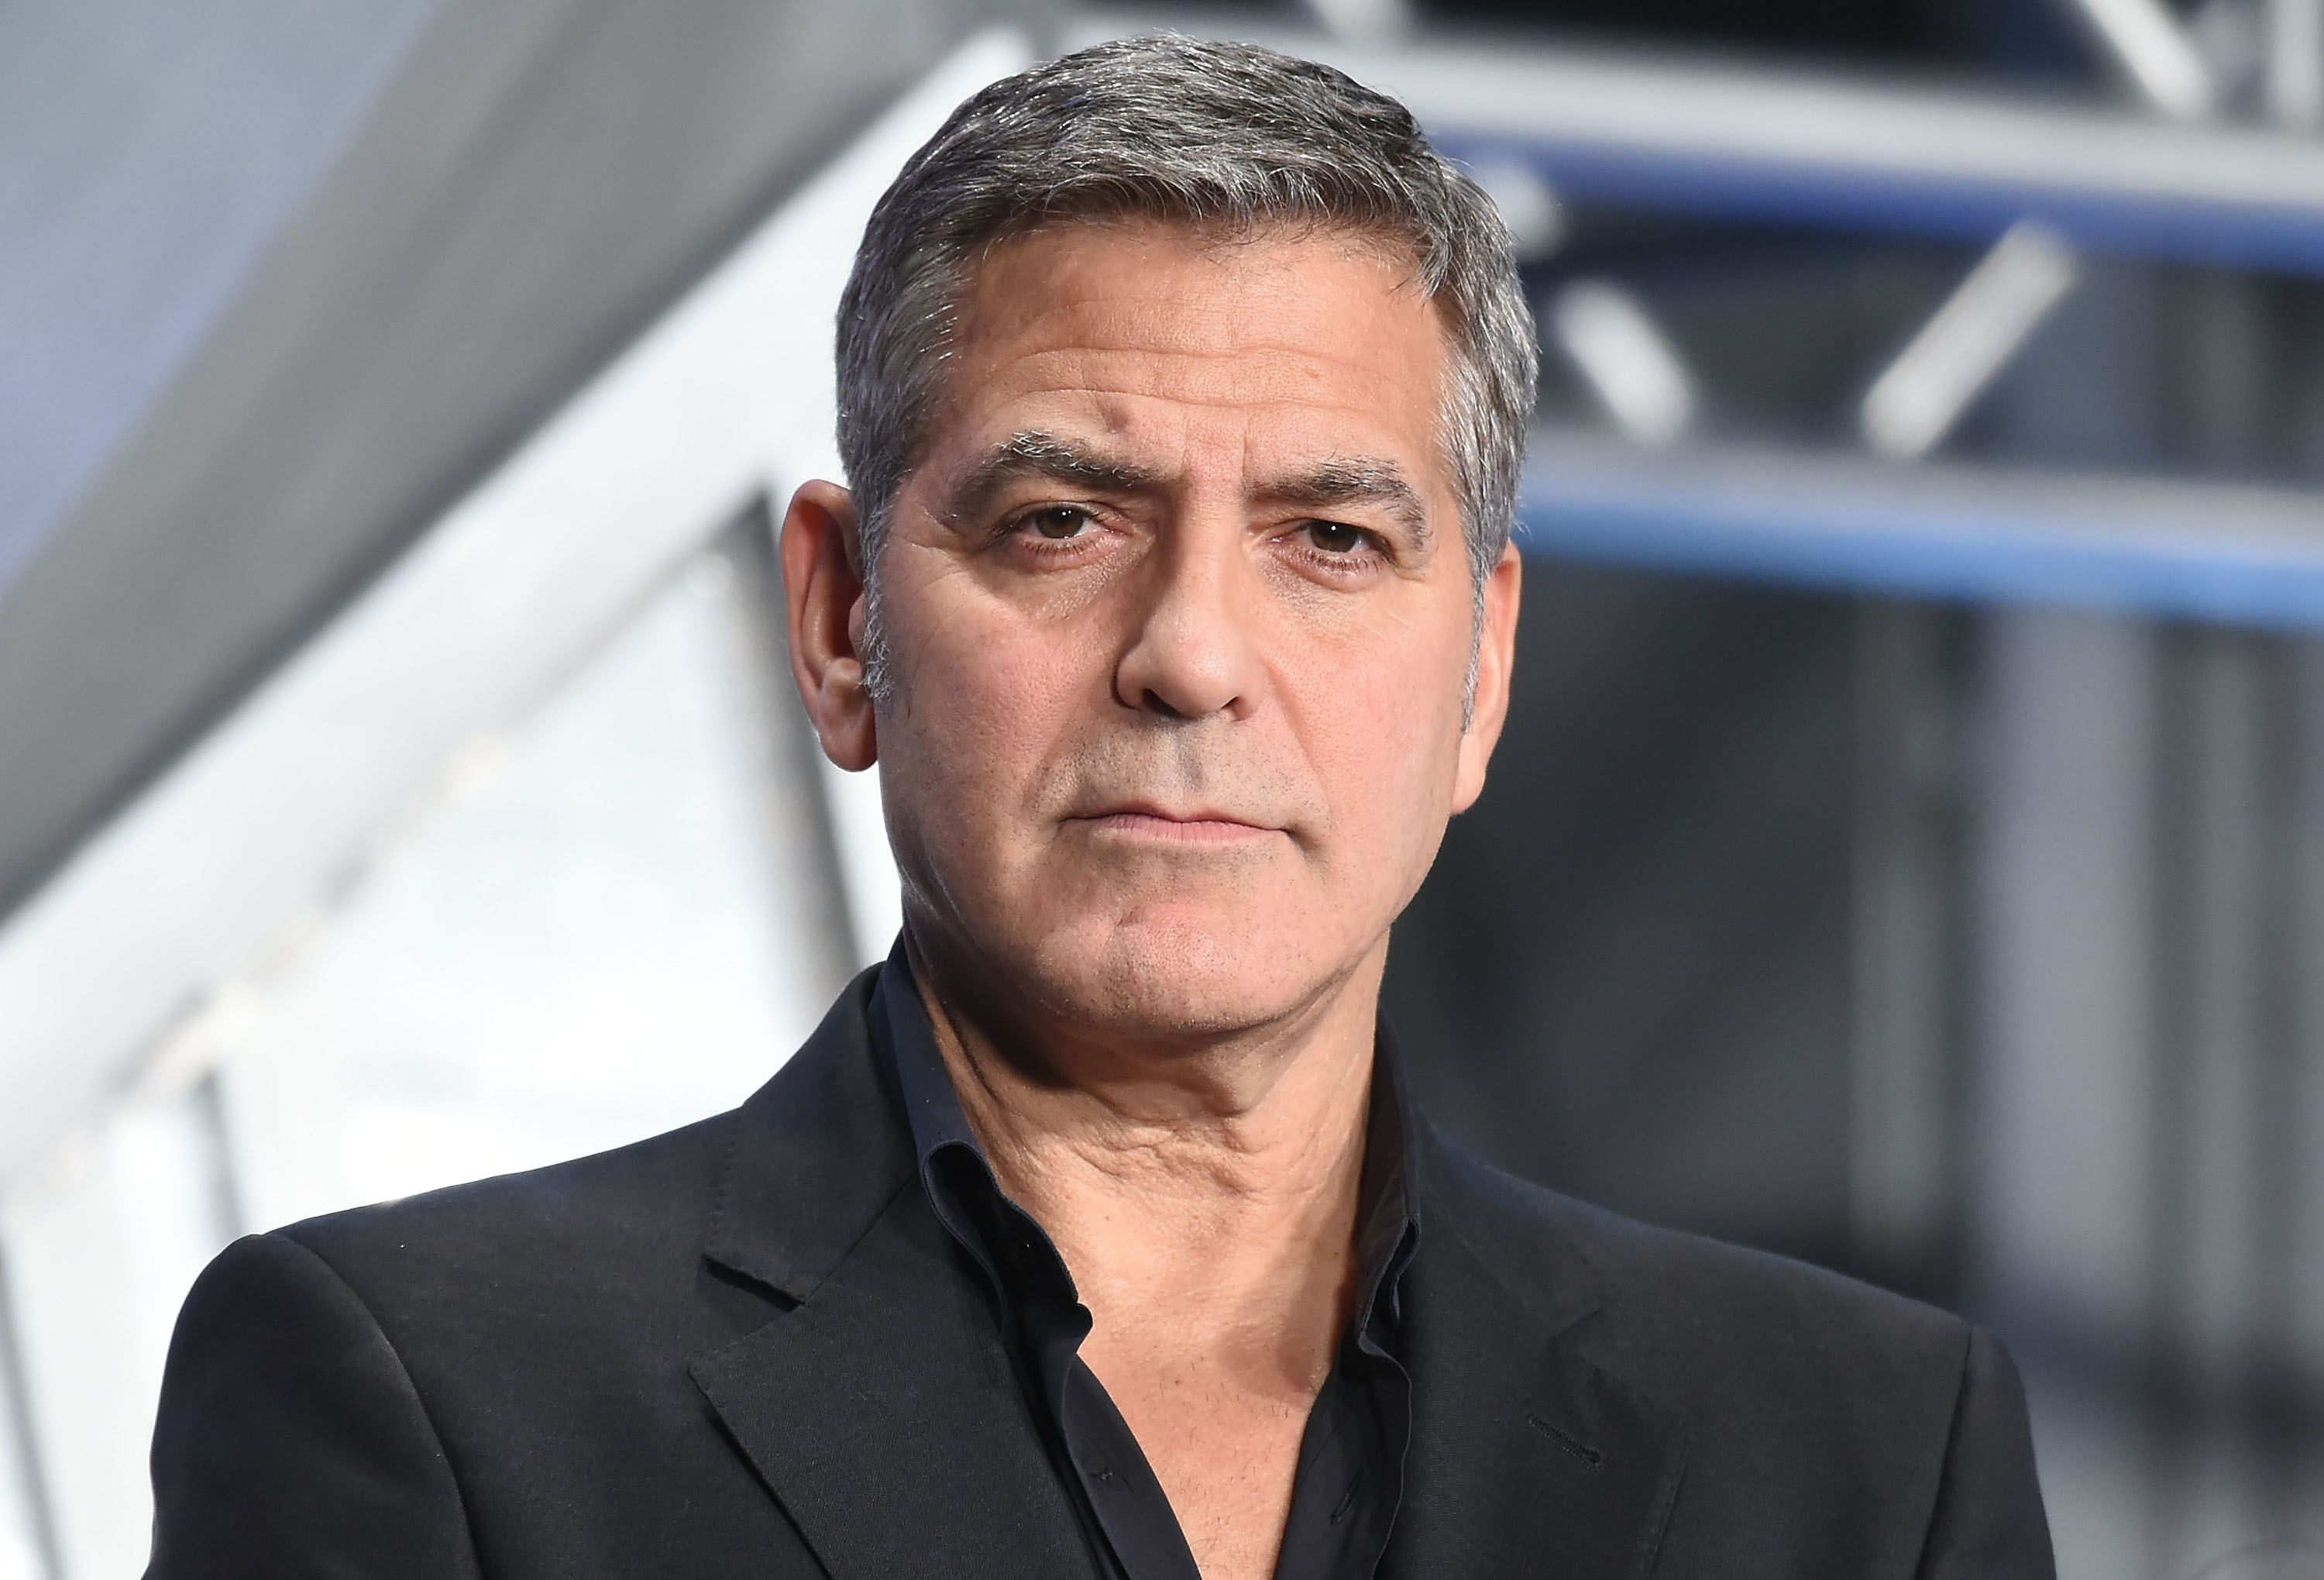 George Clooney attends the Tokyo premiere of  Tomorrowland  at Roppongi Hills on May 25, 2015 in Tokyo, Japan.